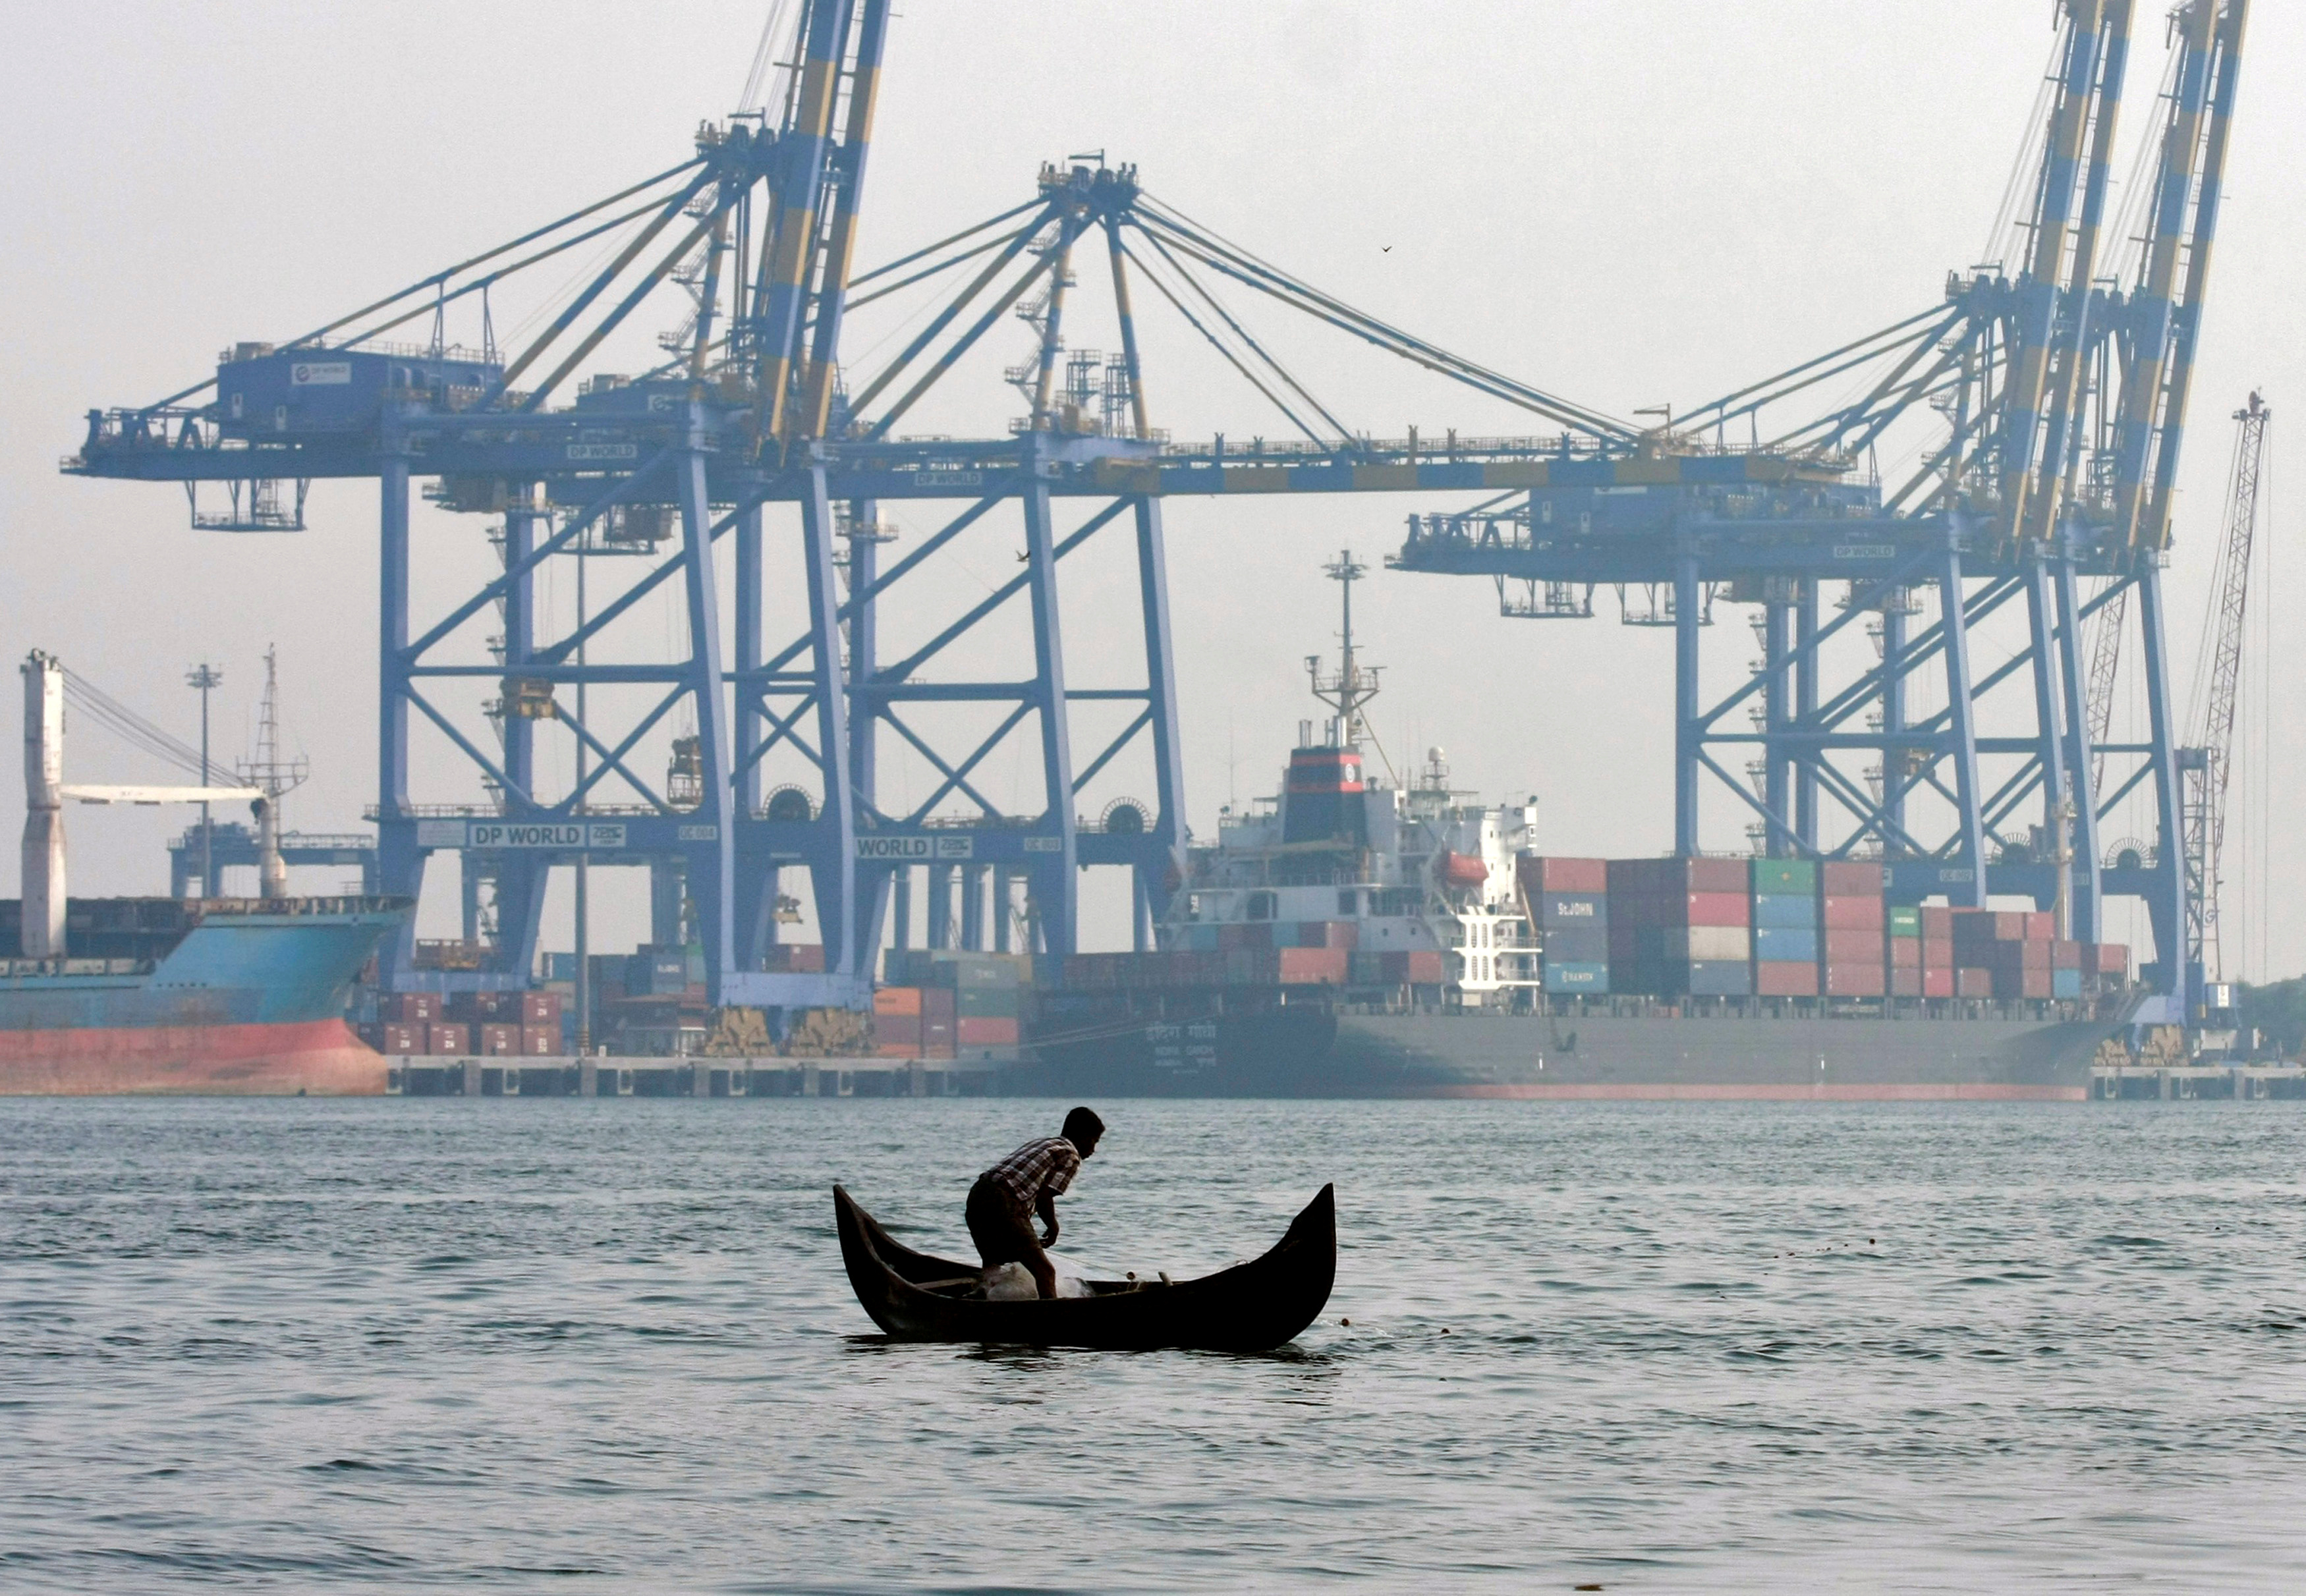 India's October trade deficit widens to $17.13 billion